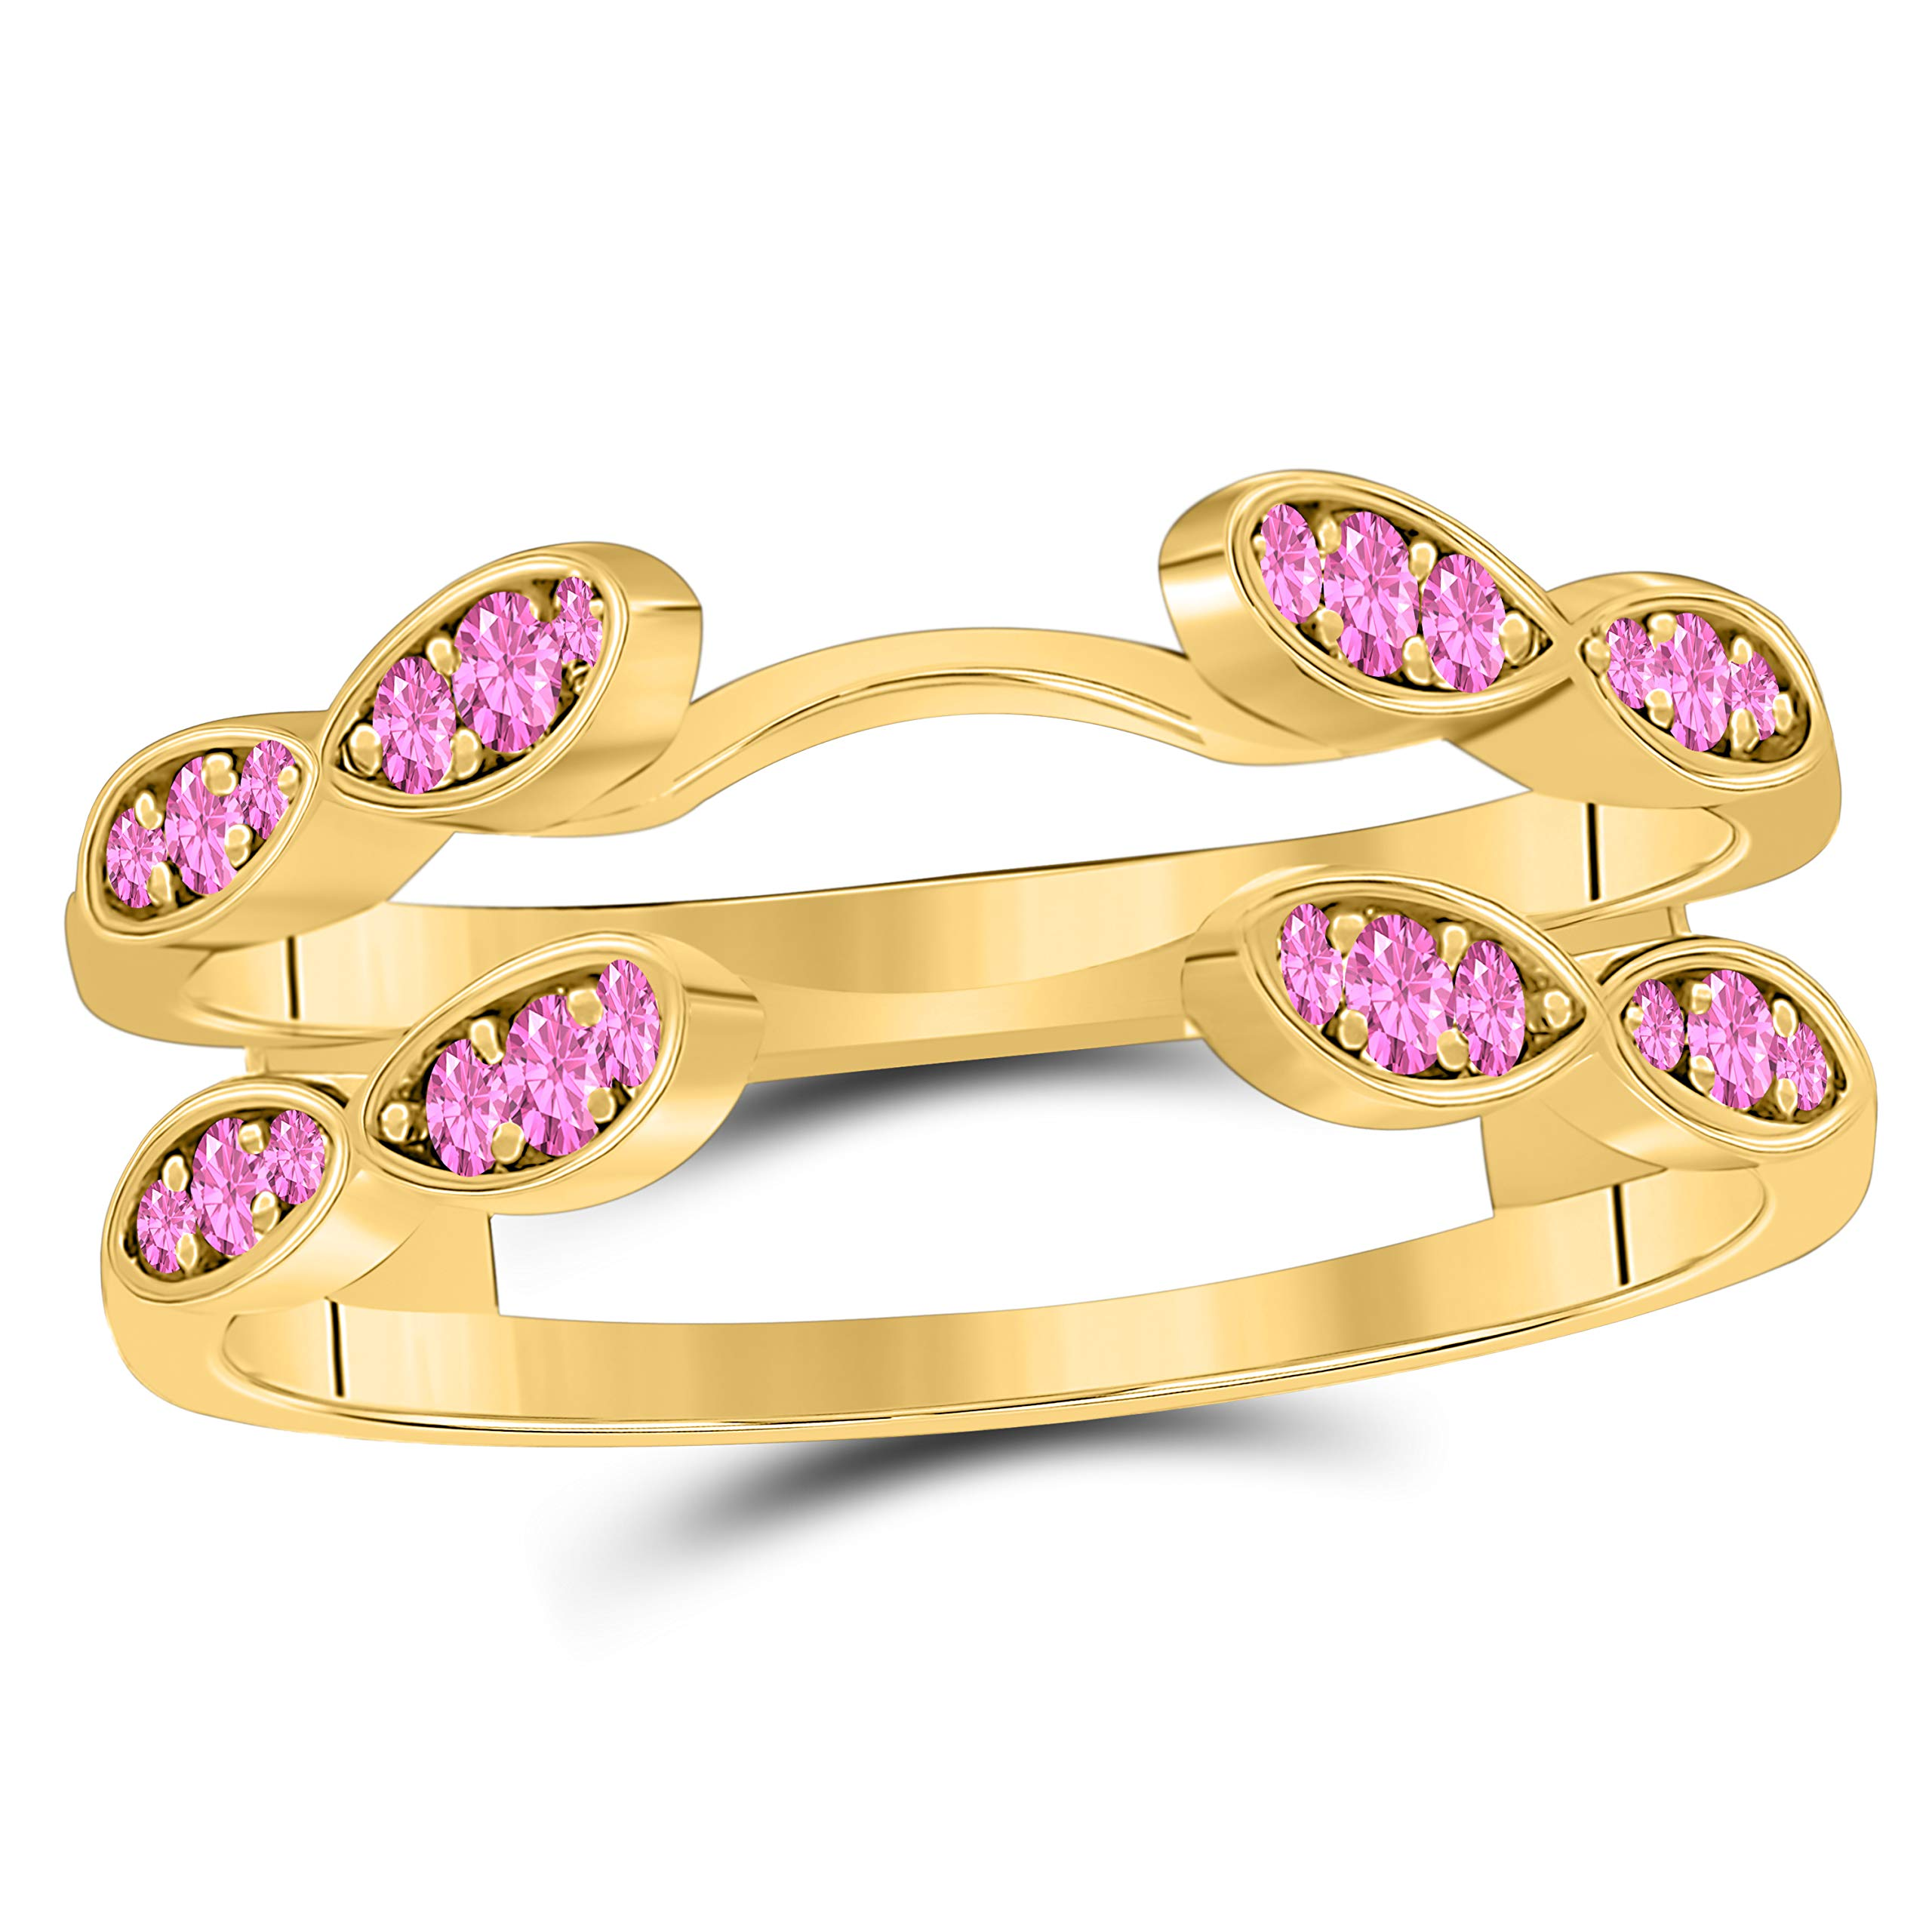 Silver Gems Factory 14k Gold Plated 0.50 Ct Created Pink Sapphire Round Solitaire Infinity Ring Enhancer Guard Wrap Wedding Band